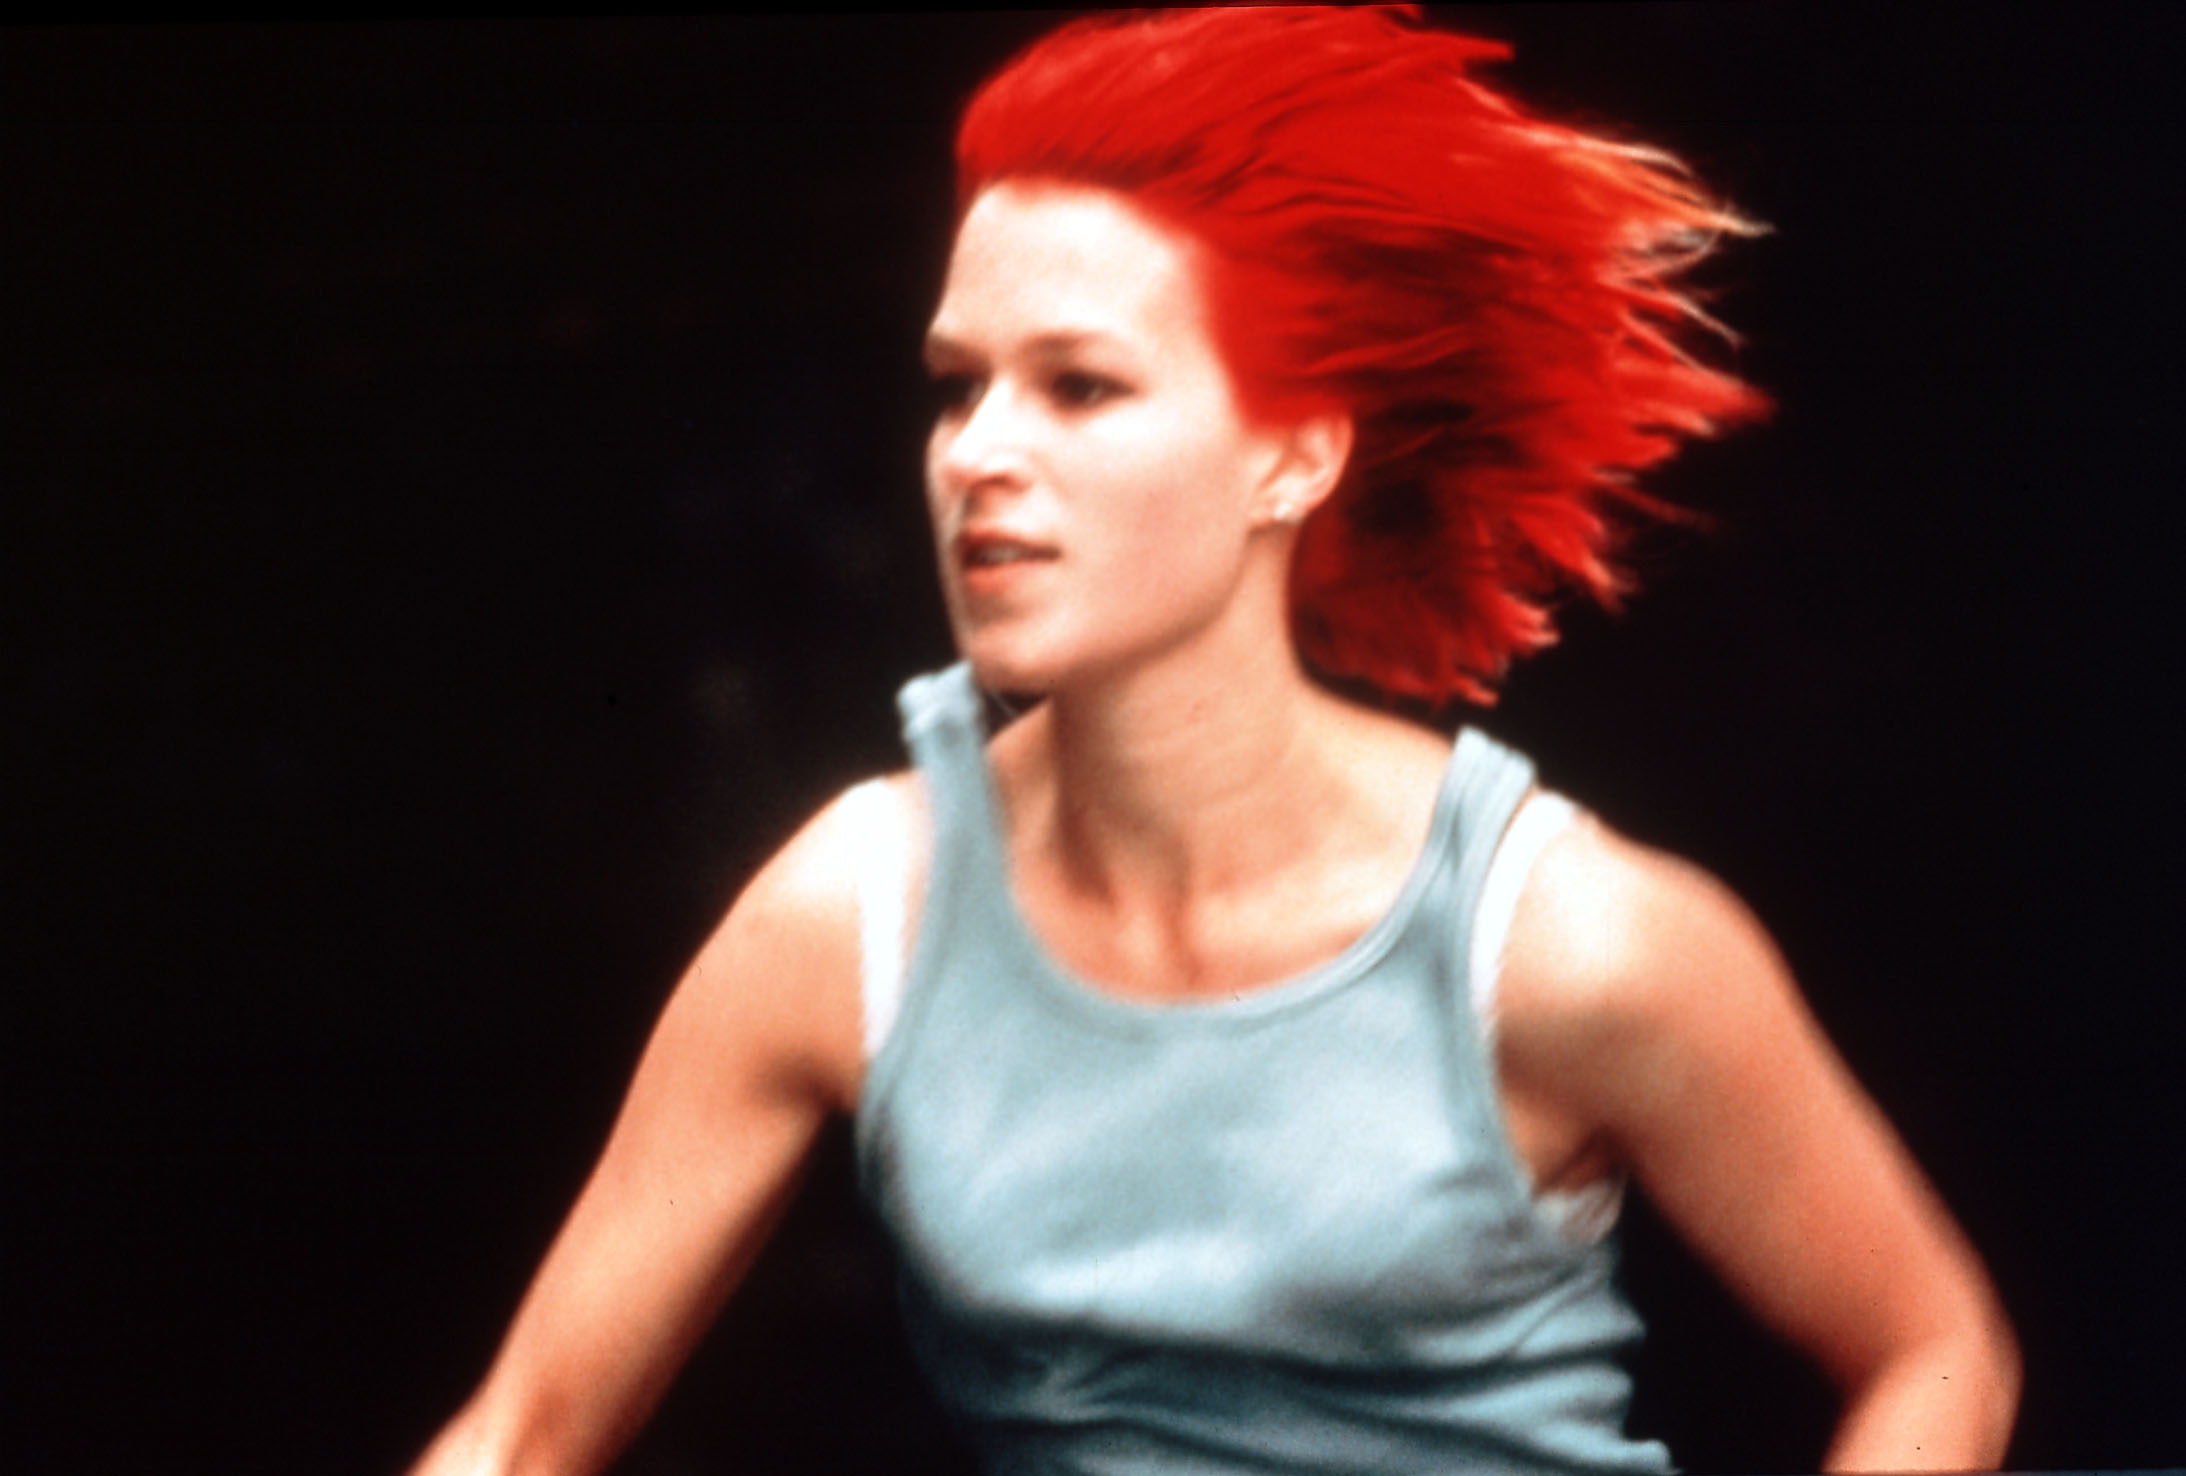 RUN LOLA RUN (GER1998) aka LOLA RENNT FRANKA POTENTE AS LOLA     Date: 1998 (Mary Evans Picture Library) Keine Weitergabe an